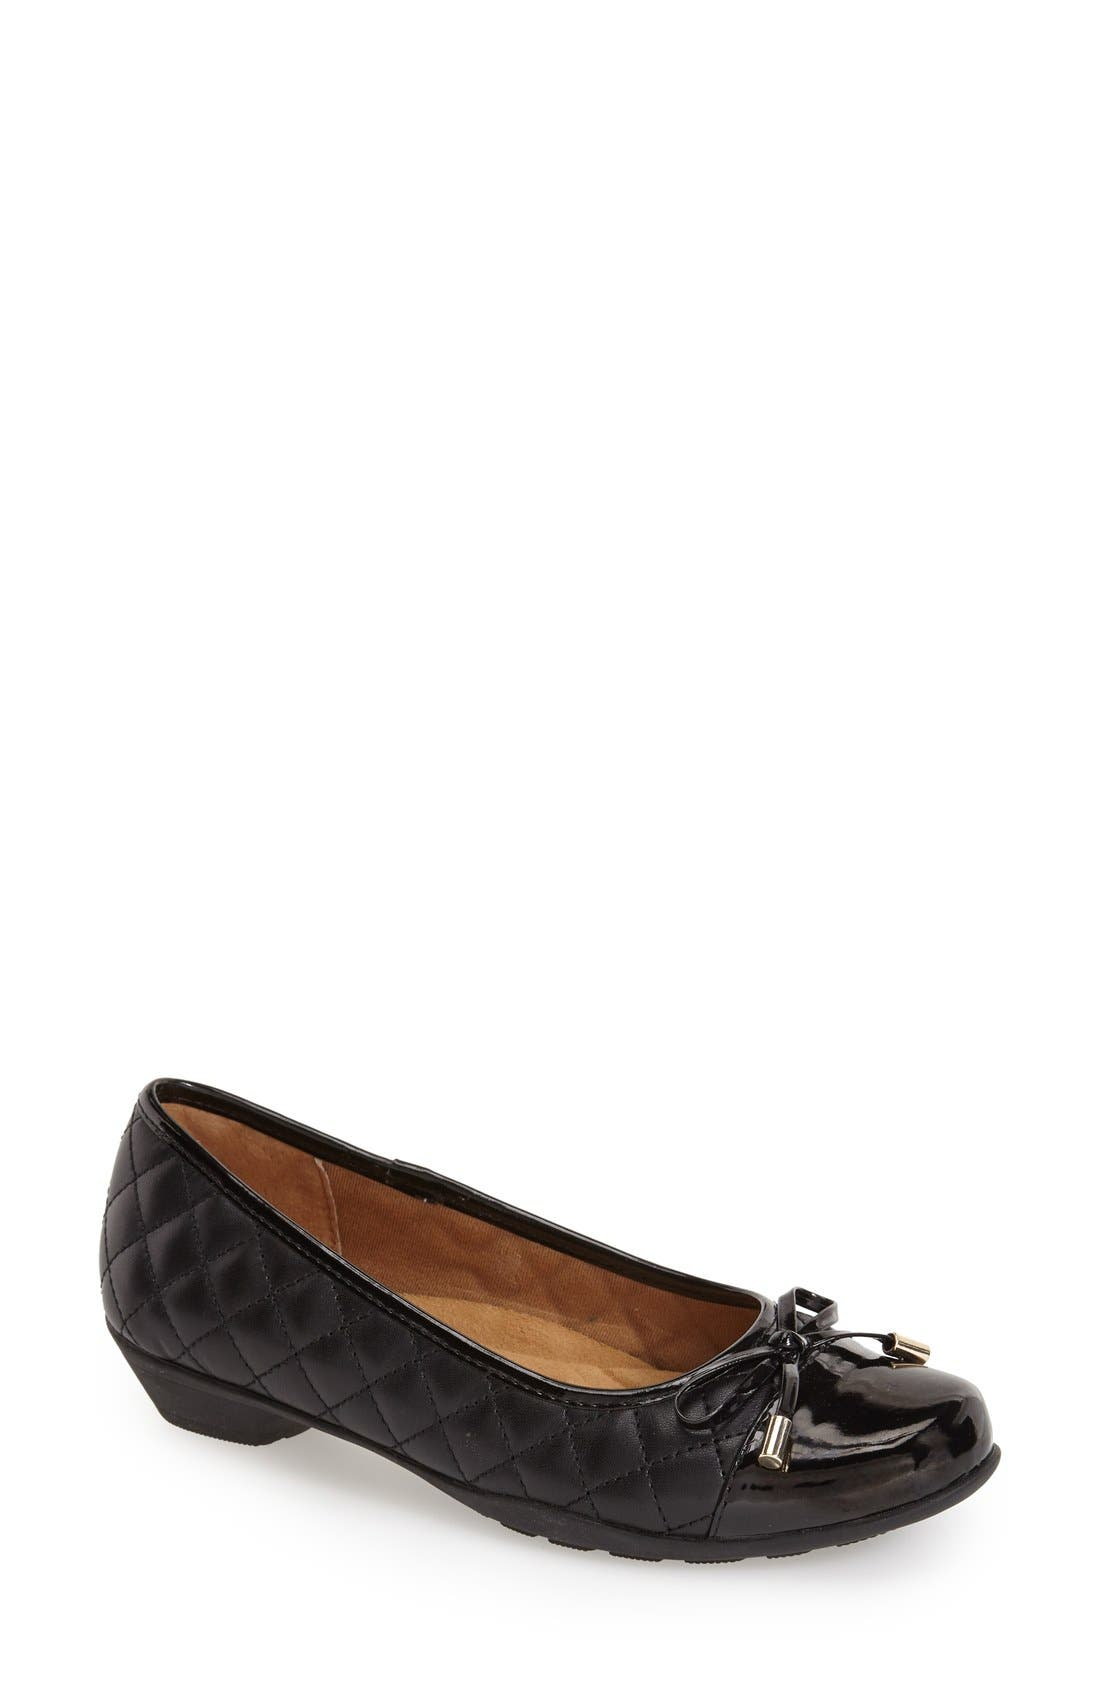 Main Image - Softspots 'Panola' Quilted Ballet Flat ...